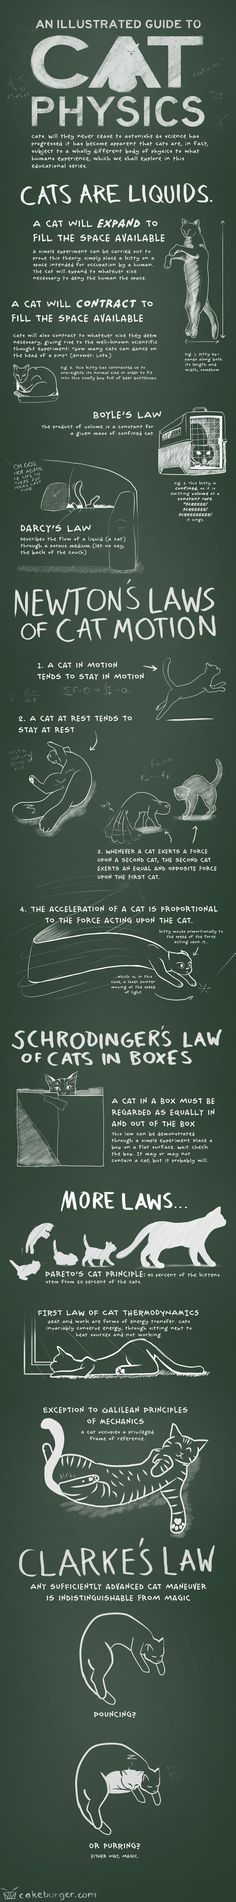 Cat Physics Infographic #cats #pet #science